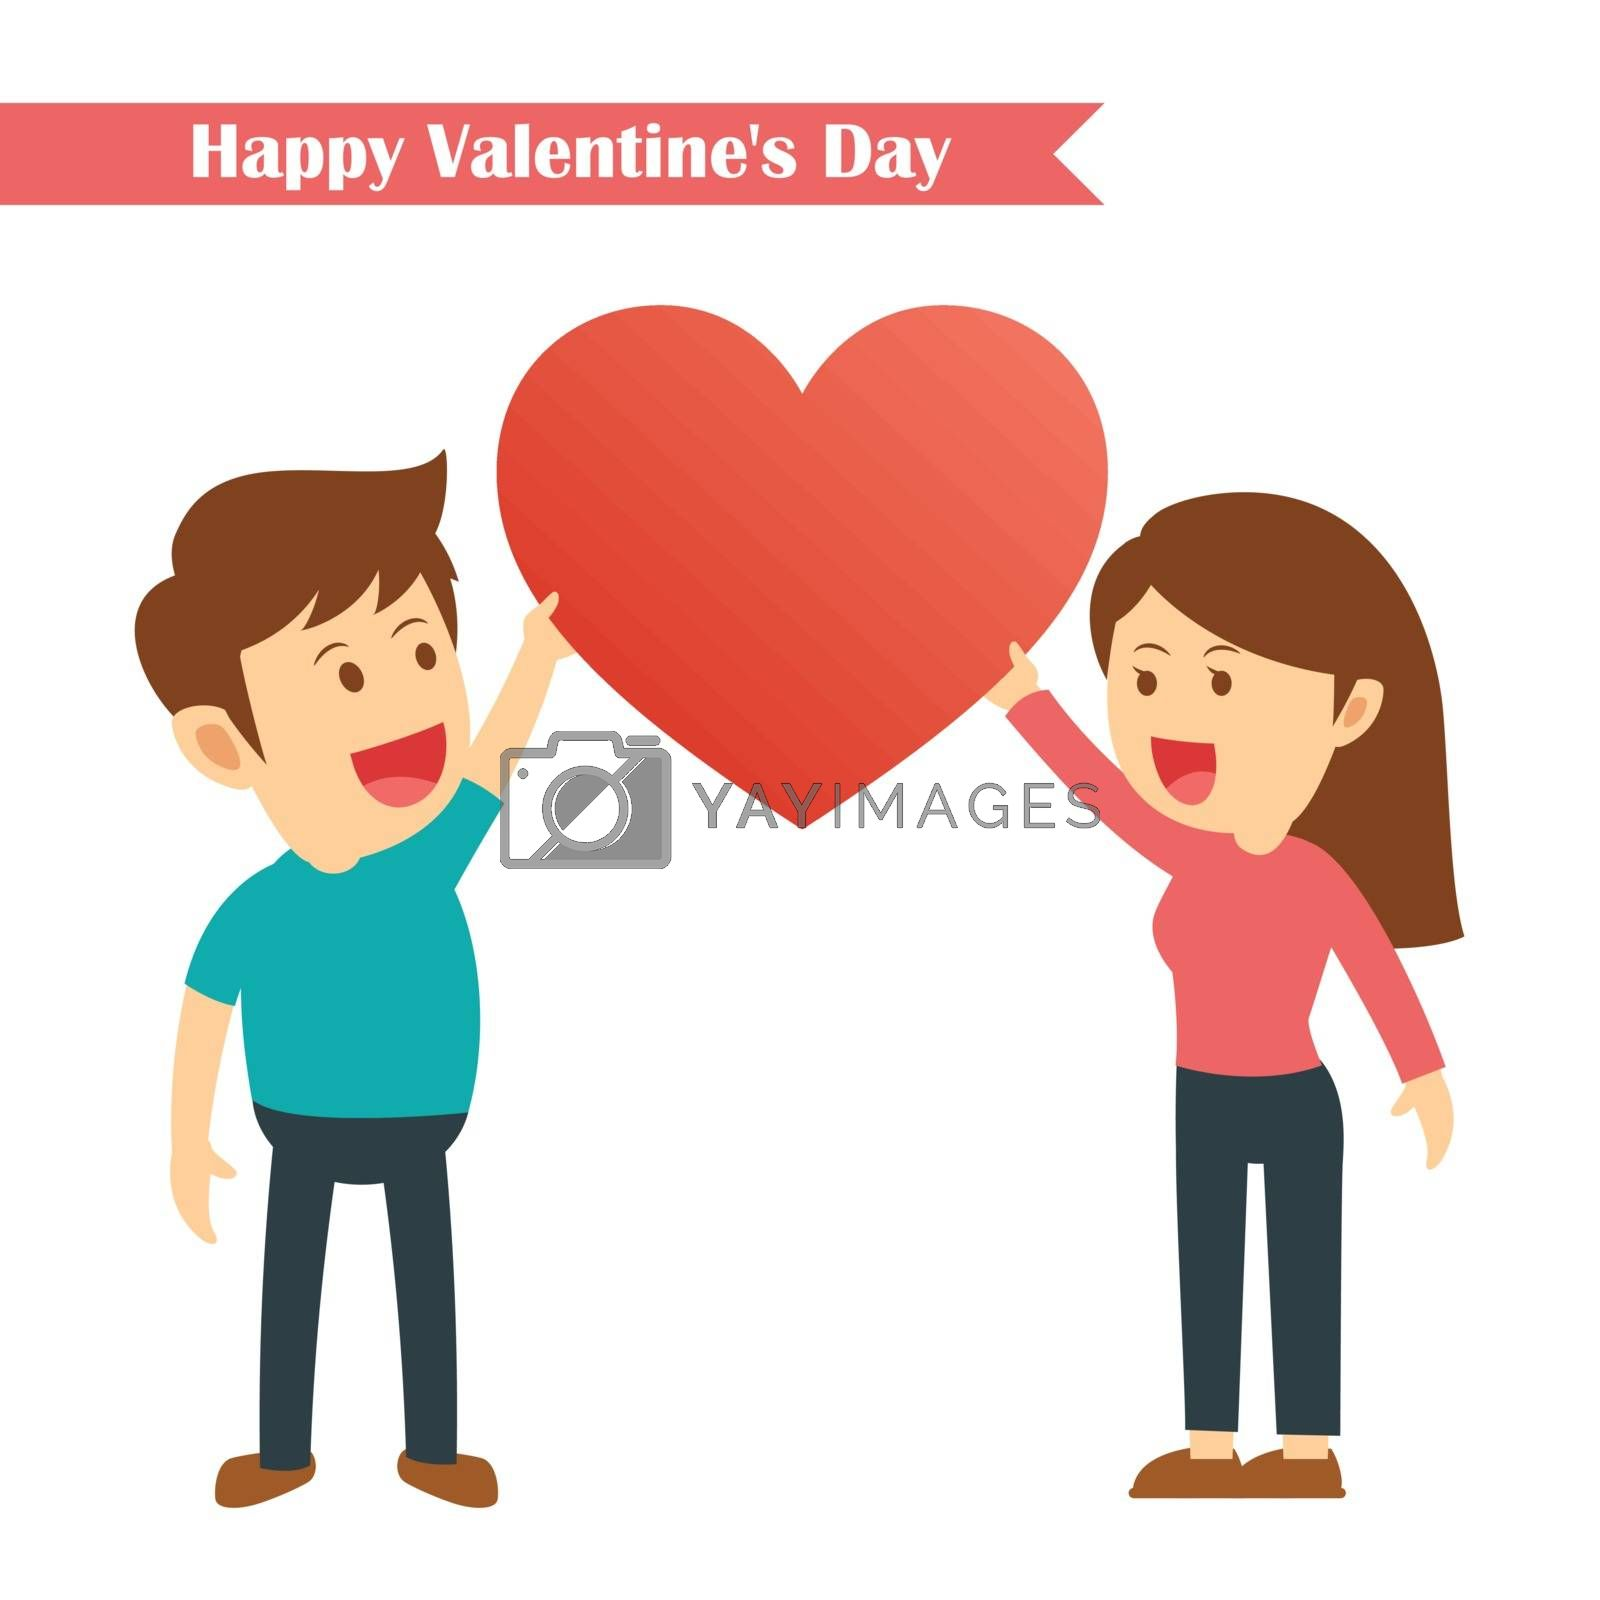 characters couples happy valentines day isolated on white background.